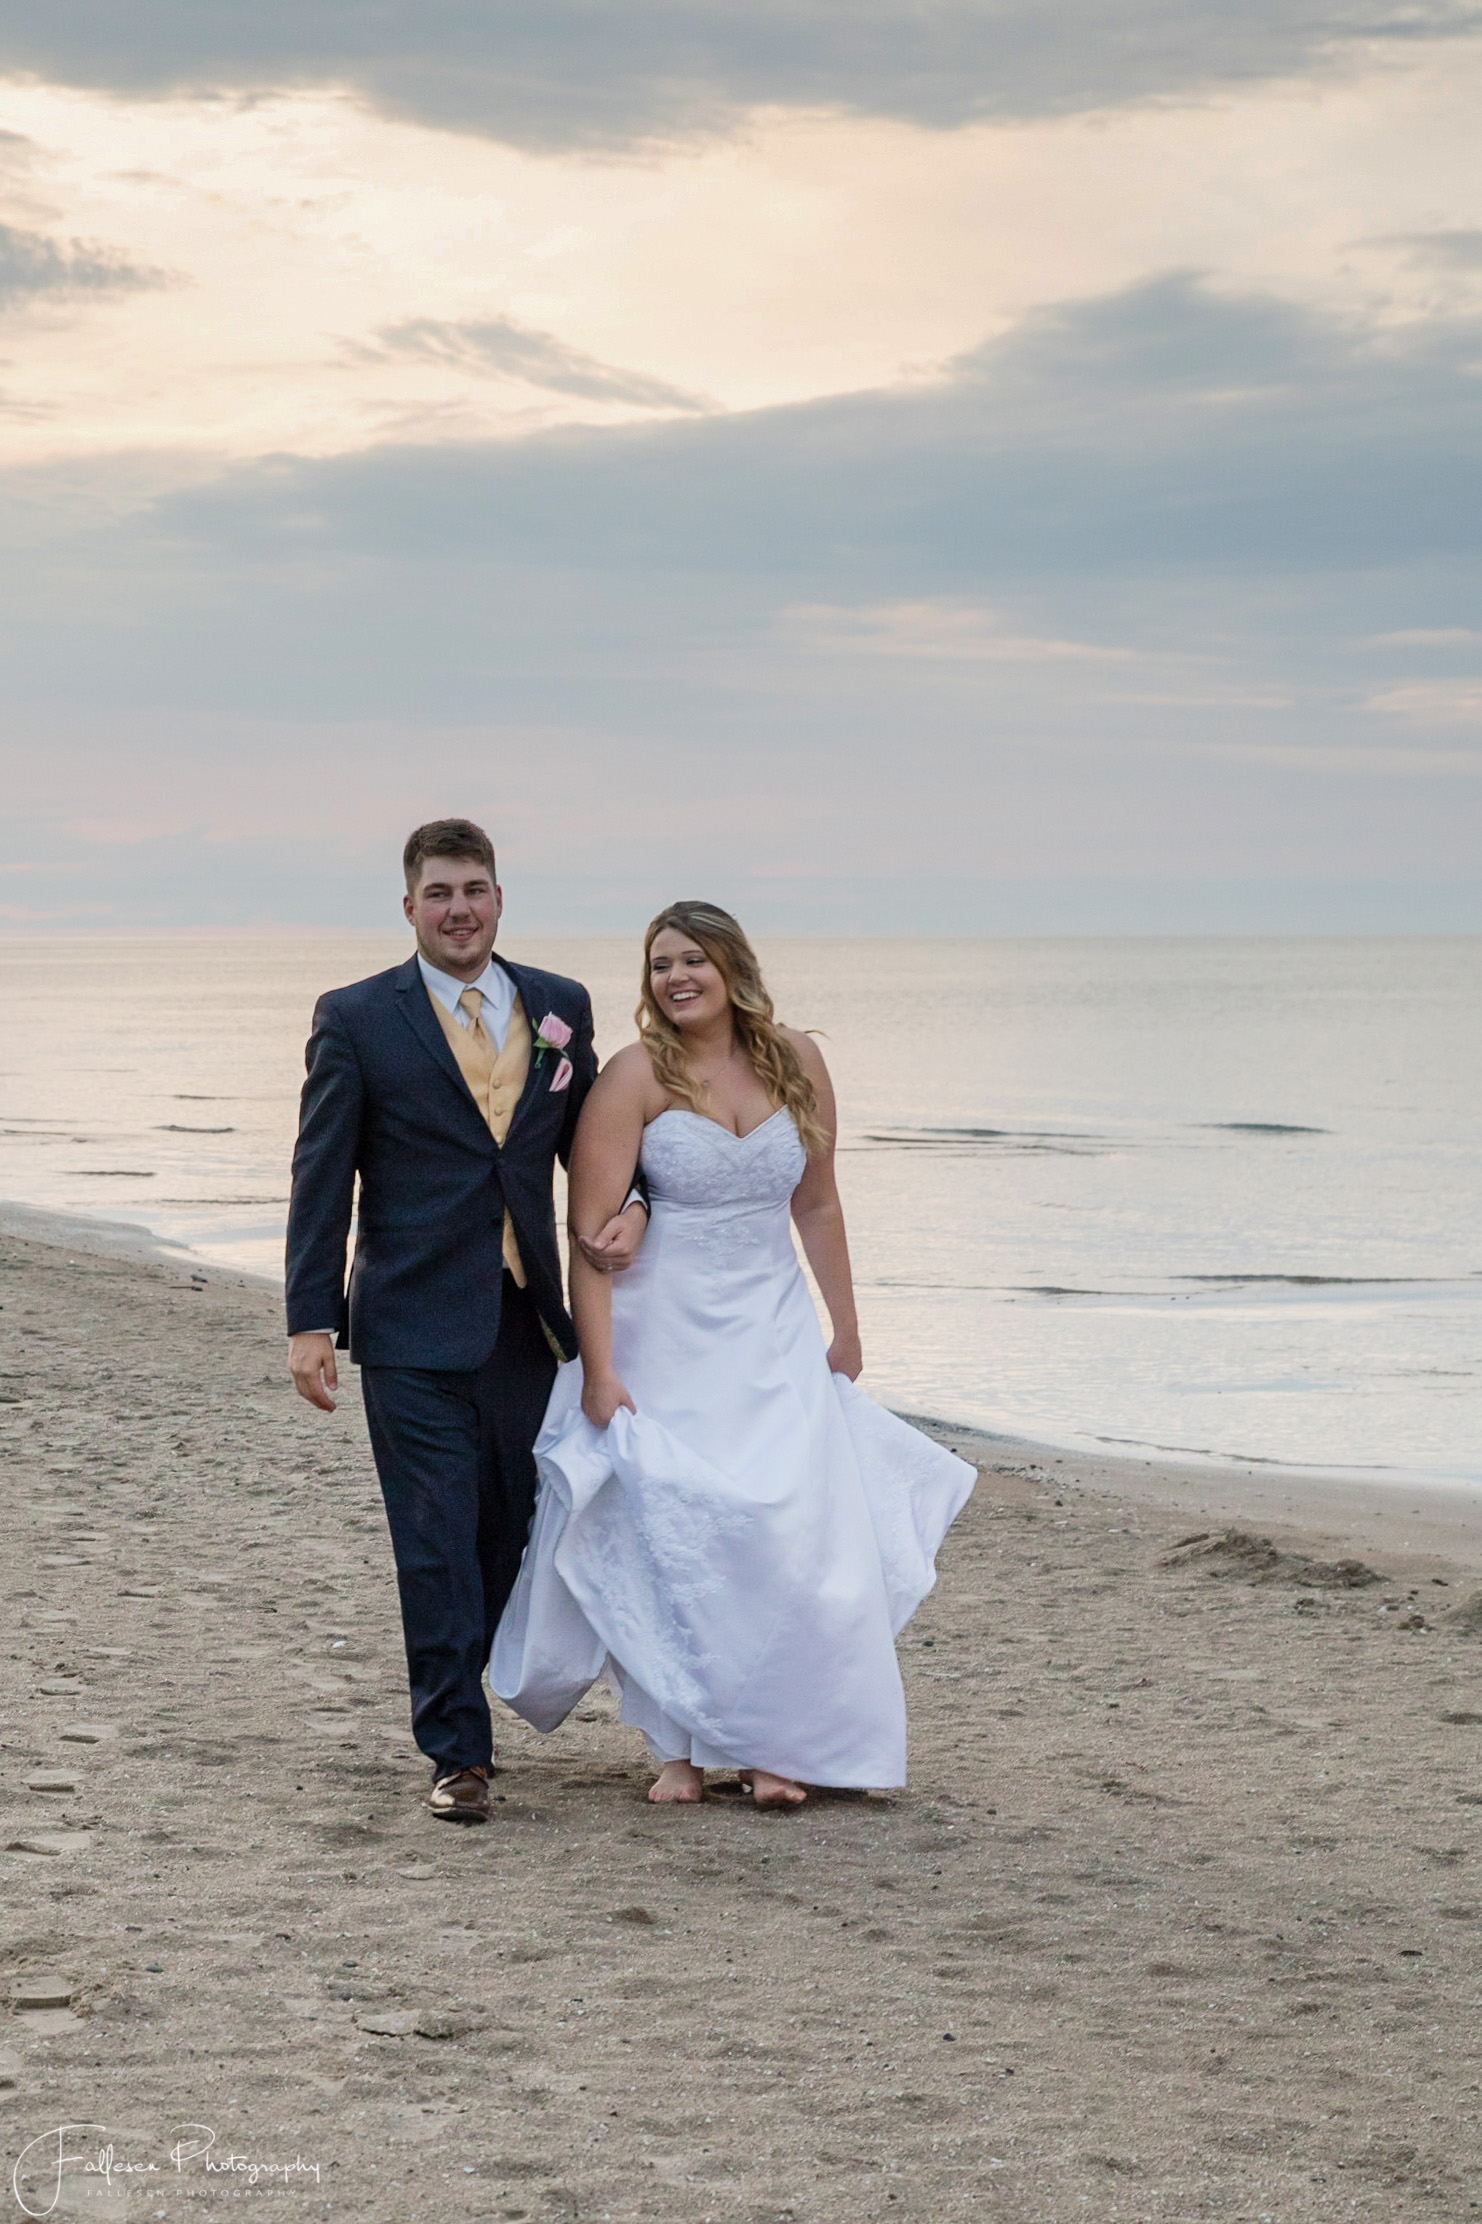 Ontario Beach Roger Robach Community Center, Cliver and Lee Wedding in Rochester NY by Fallesen Photography